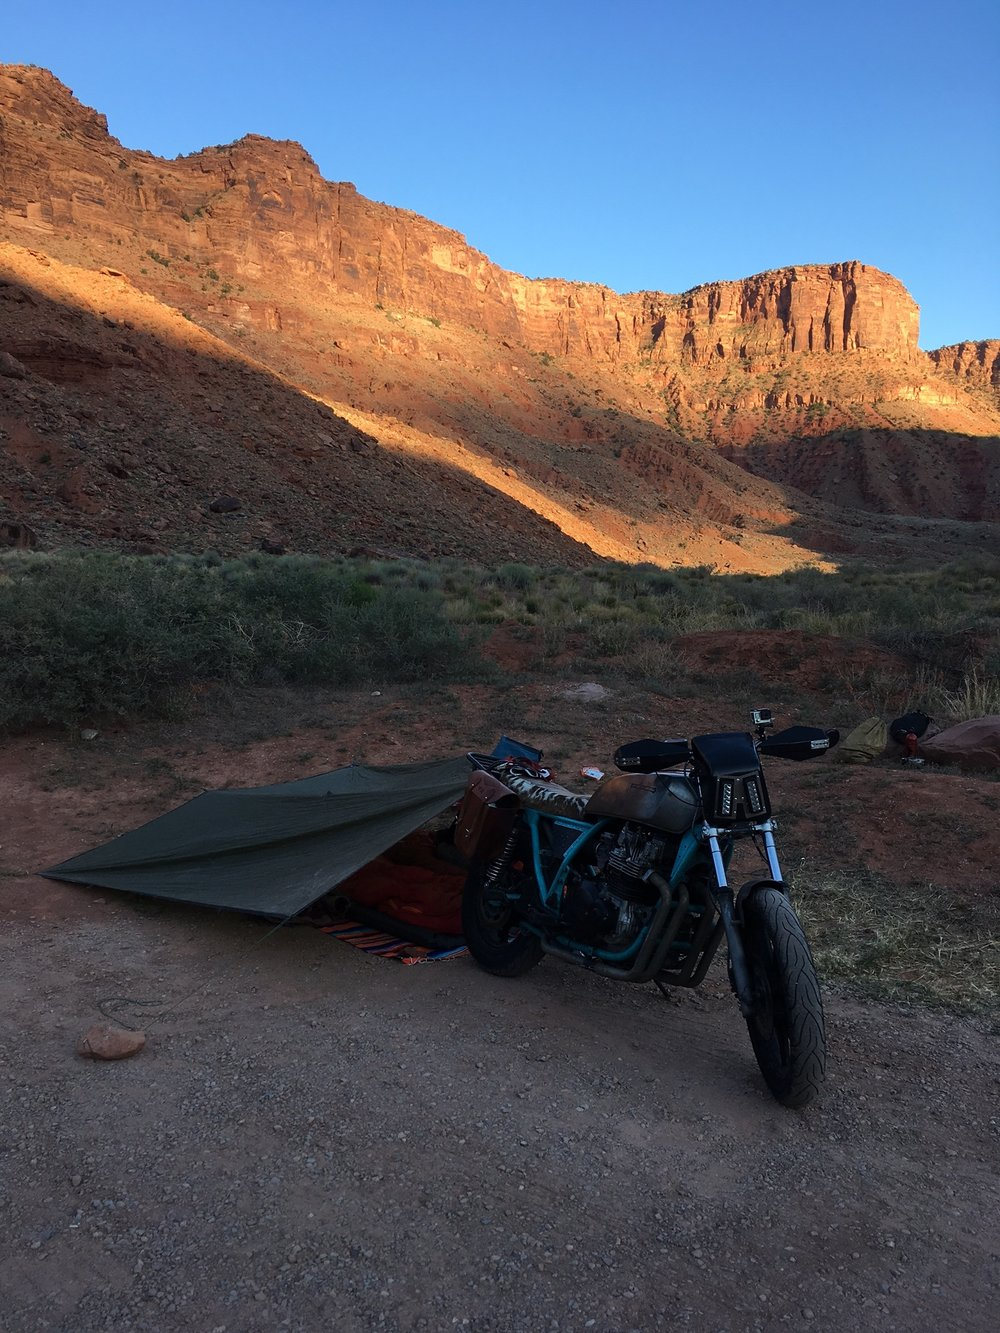 Carpark camping on the Colorado river Moab, UT